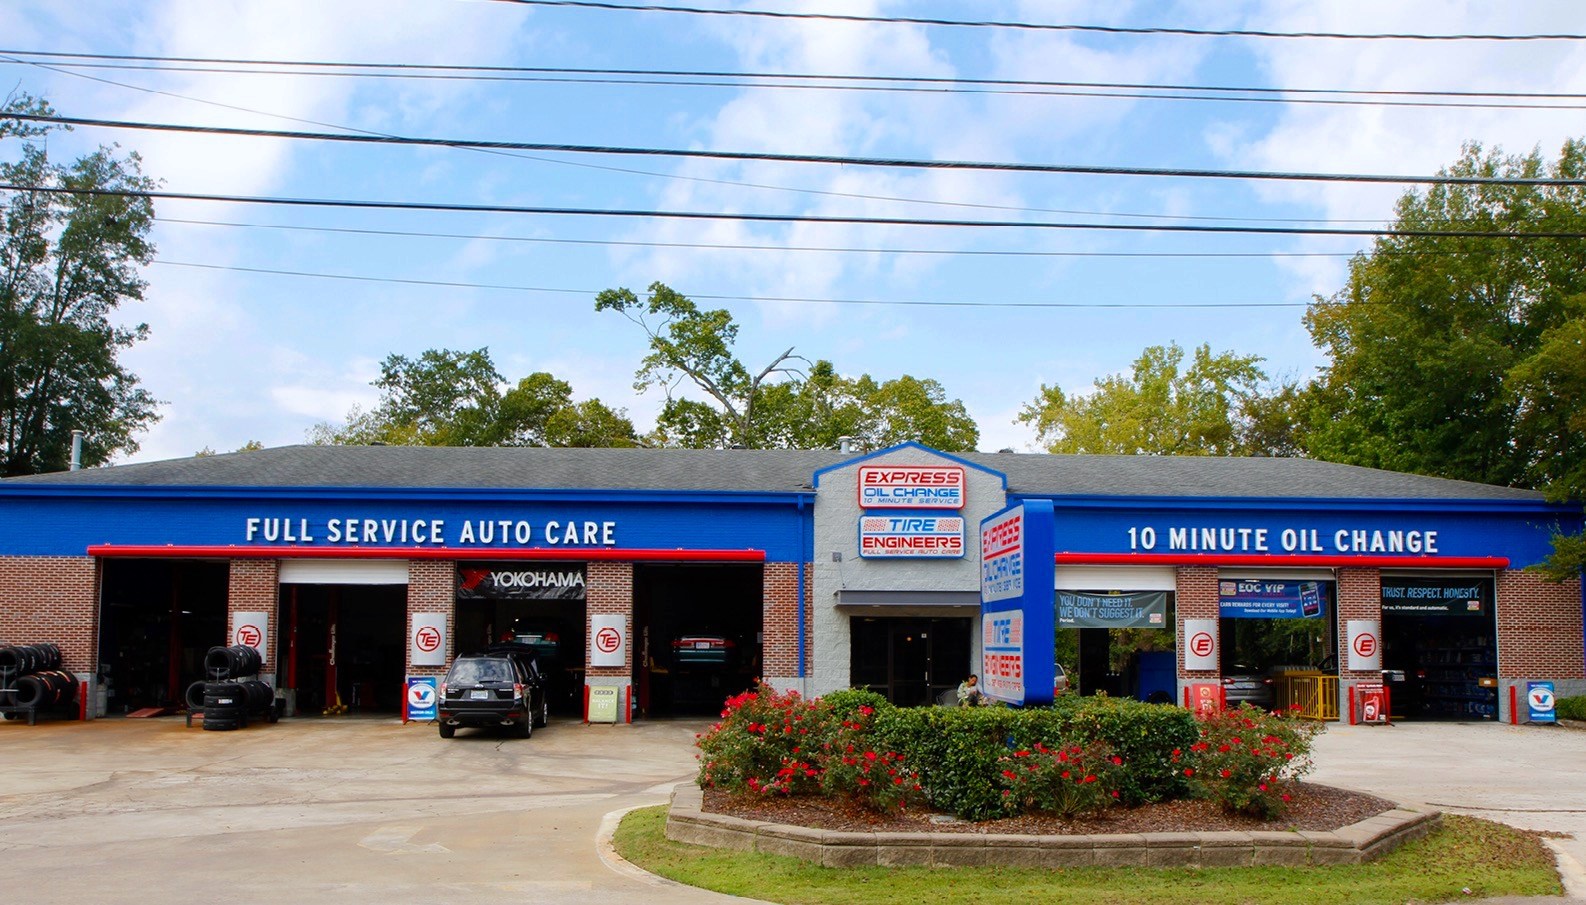 Express Oil Change & Tire Engineers at Vestavia Hills, AL - Cahaba Heights store